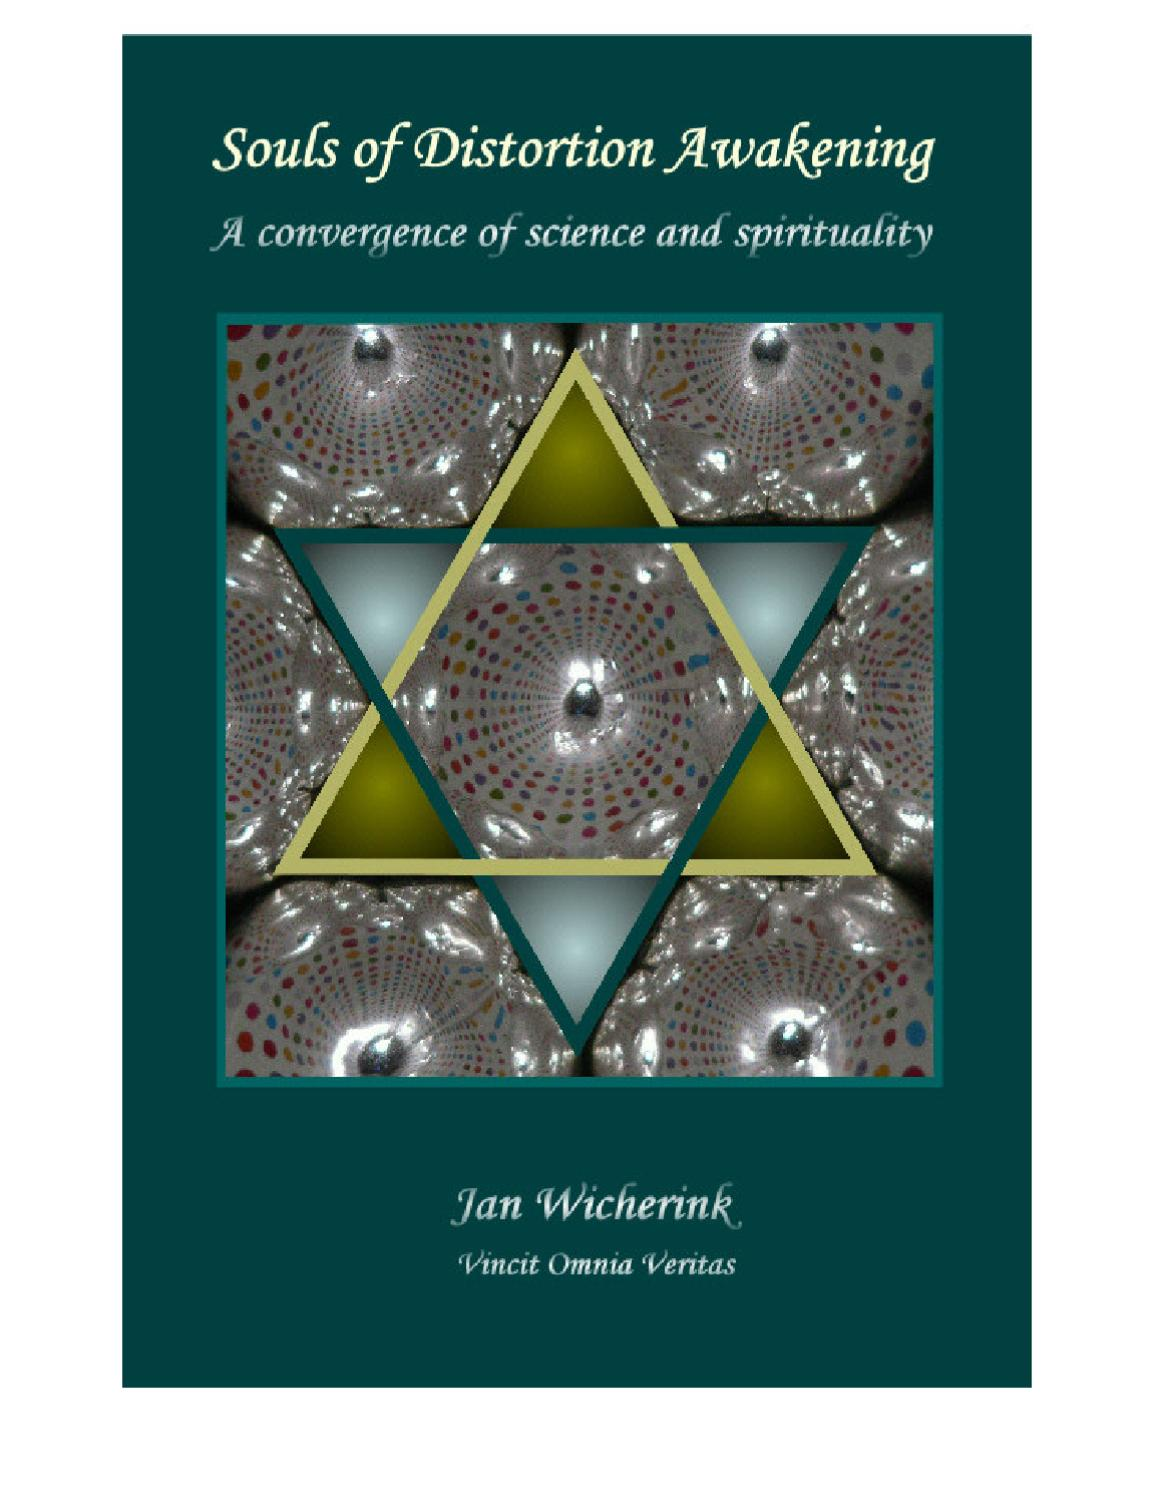 Jan Wicherink - Souls of Distortion Awakening - A convergence of